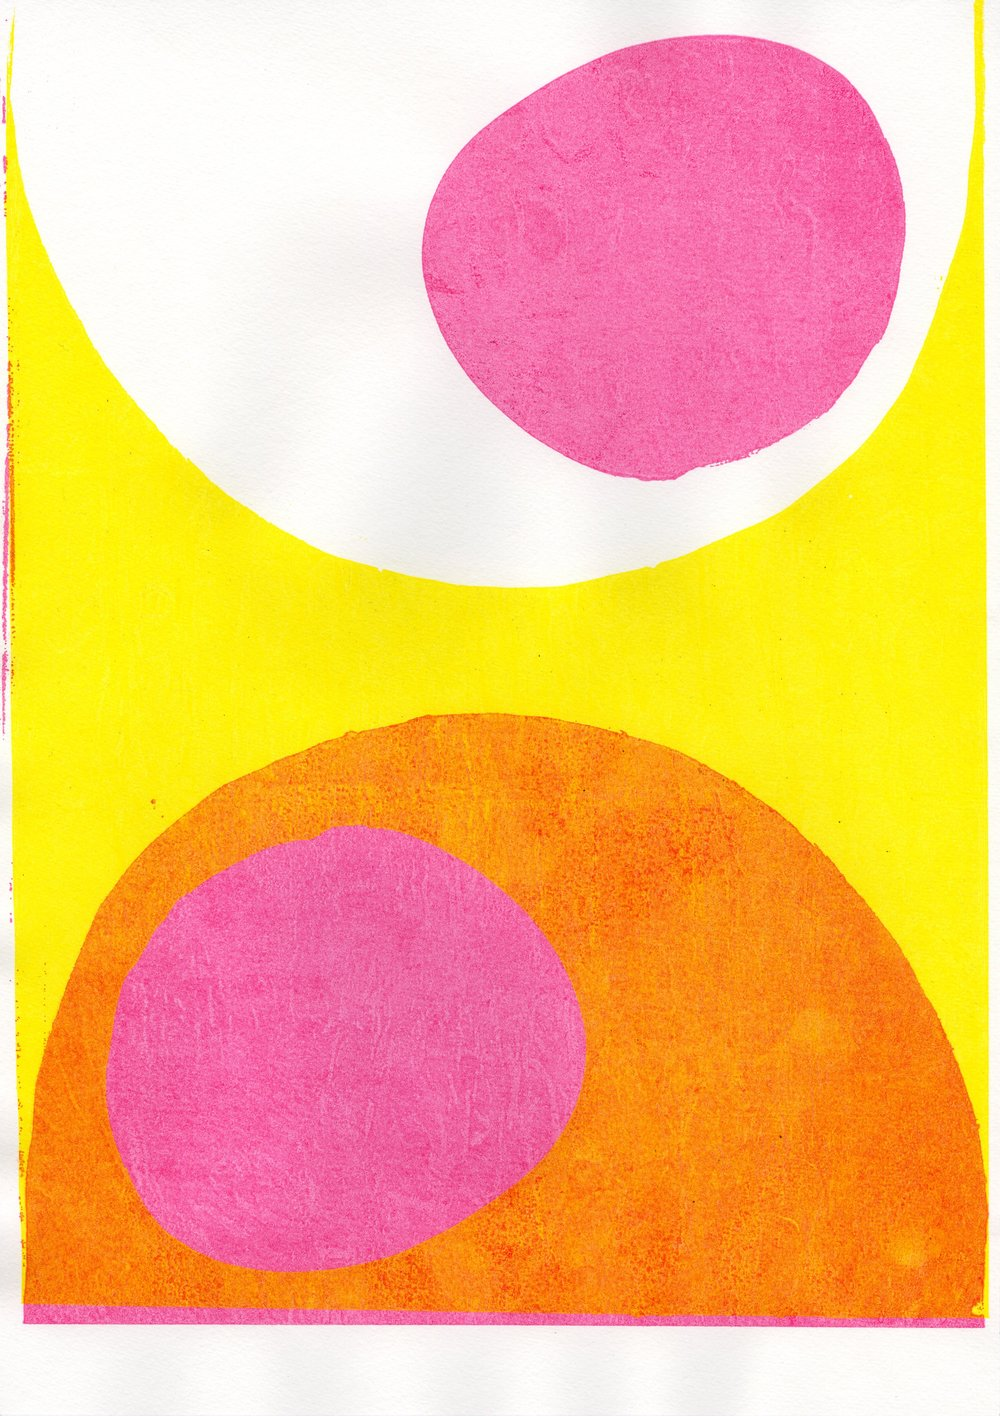 this one was inspired by a Mike Perry screen-print (inspired:ripped off) I made it by print the acetate in positive and negative, and then turning one upside-down. I love the pink and yellow overlay, with a wrinkly texture that came from drying the print off with newspaper)